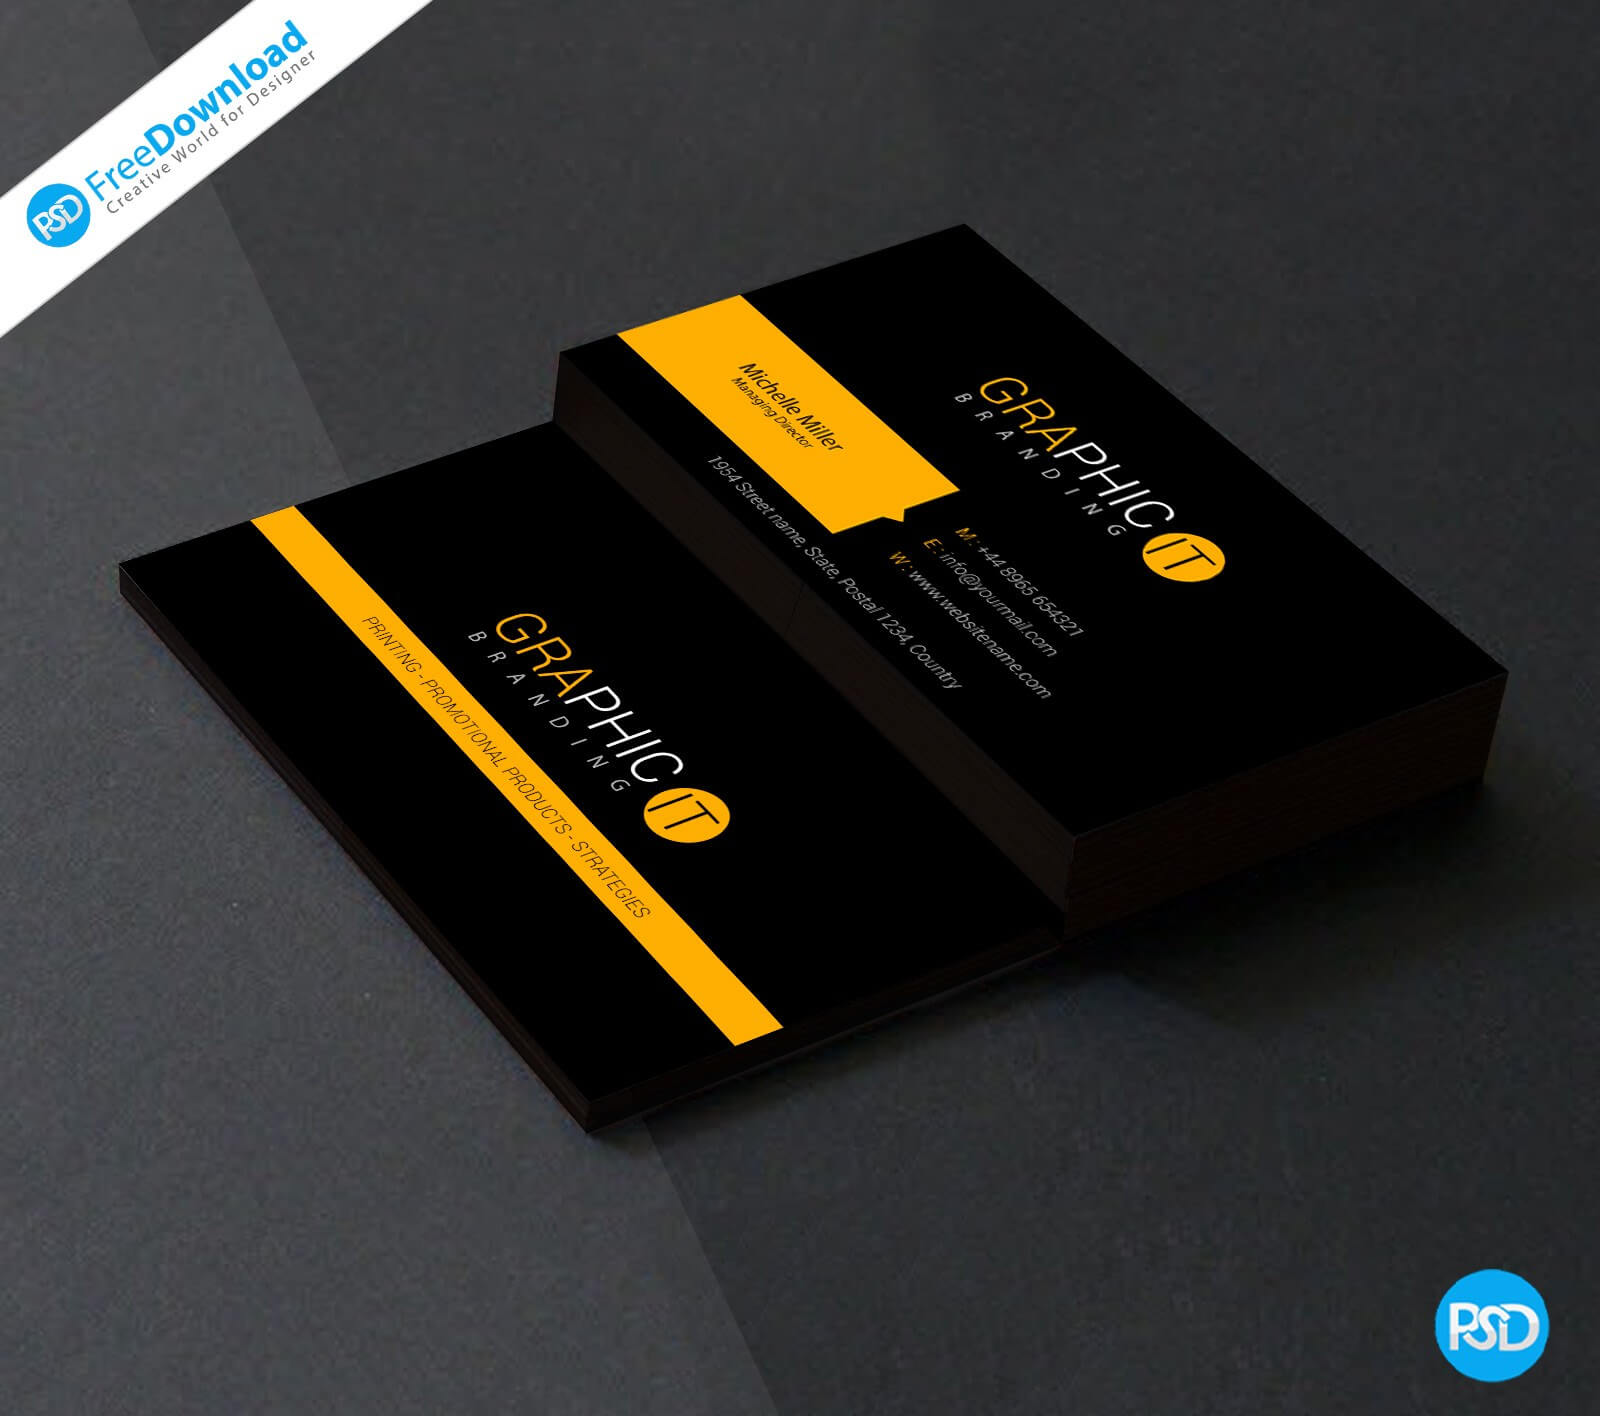 023 Professional Business Card Design Psd Blank Template Pertaining To Visiting Card Template Psd Free Download